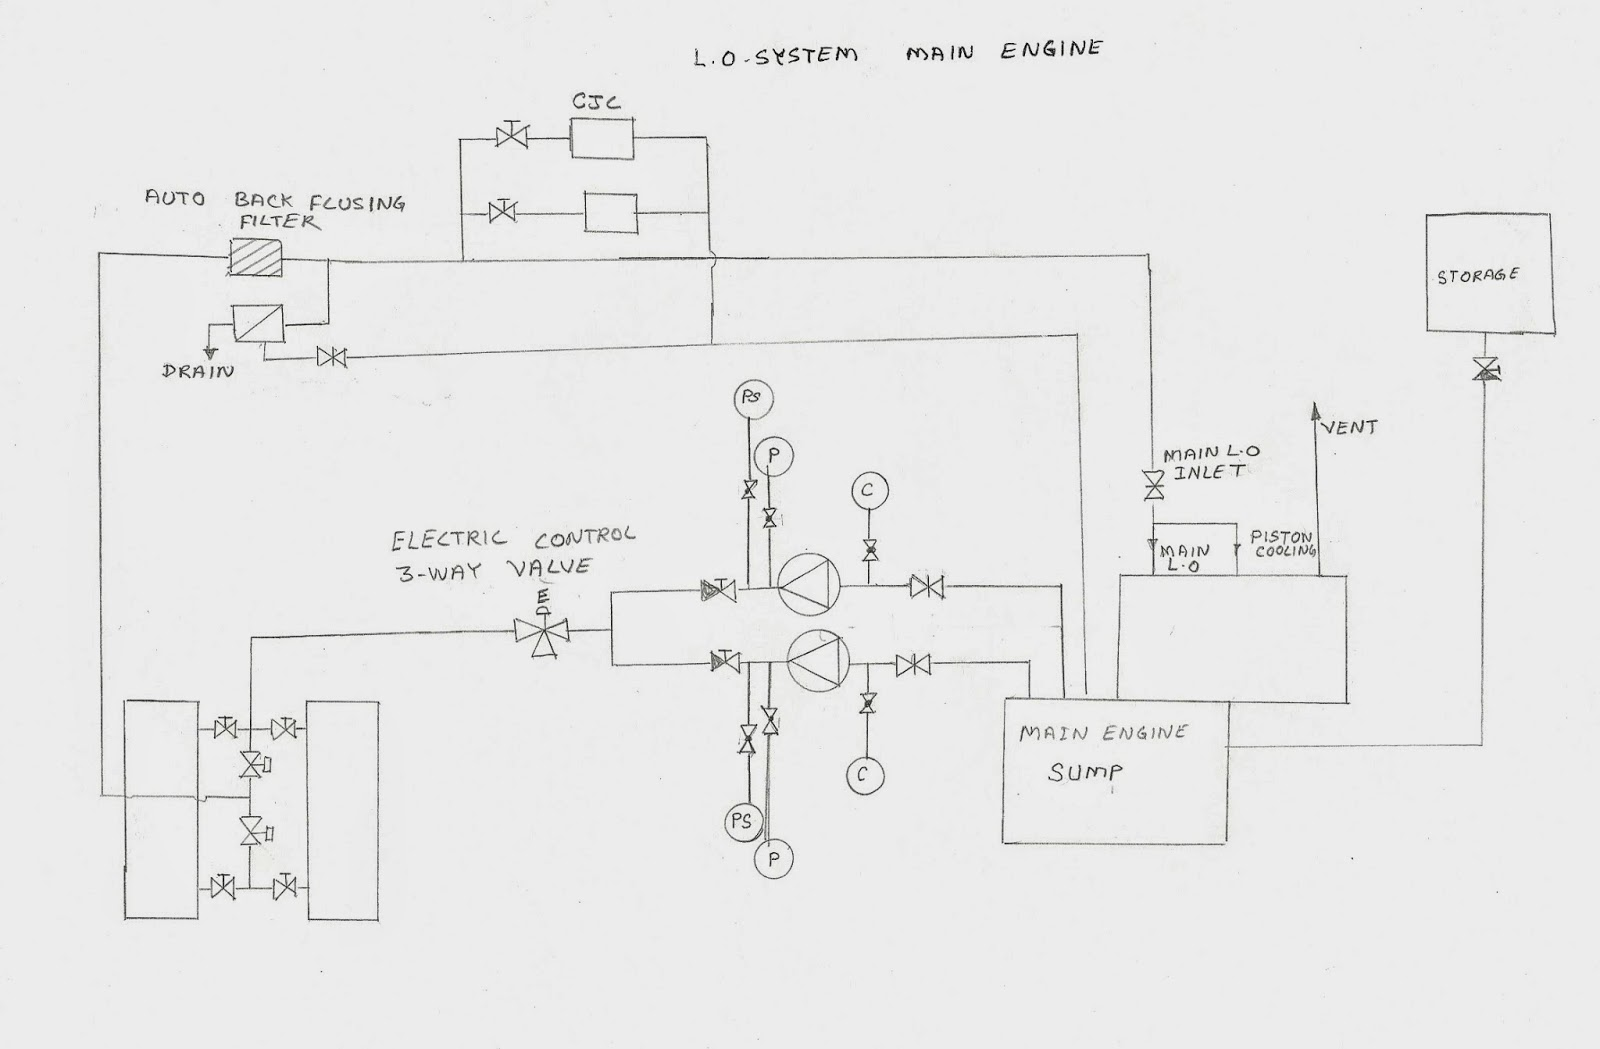 medium resolution of piping diagram in engine room wiring diagram view piping diagram in engine room